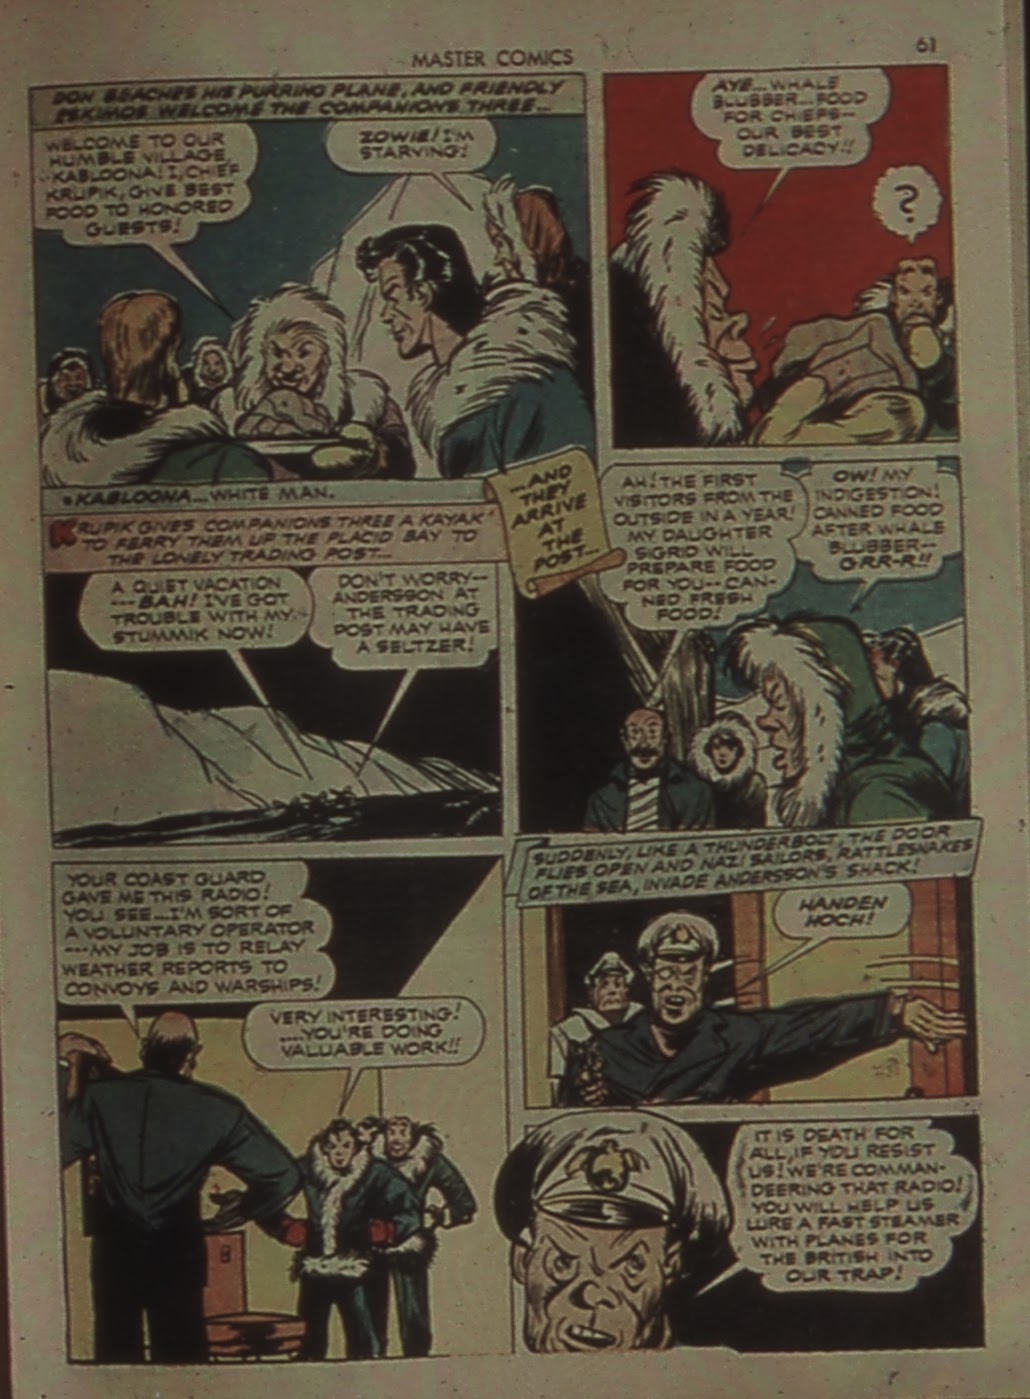 Master Comics issue 31 - Page 61